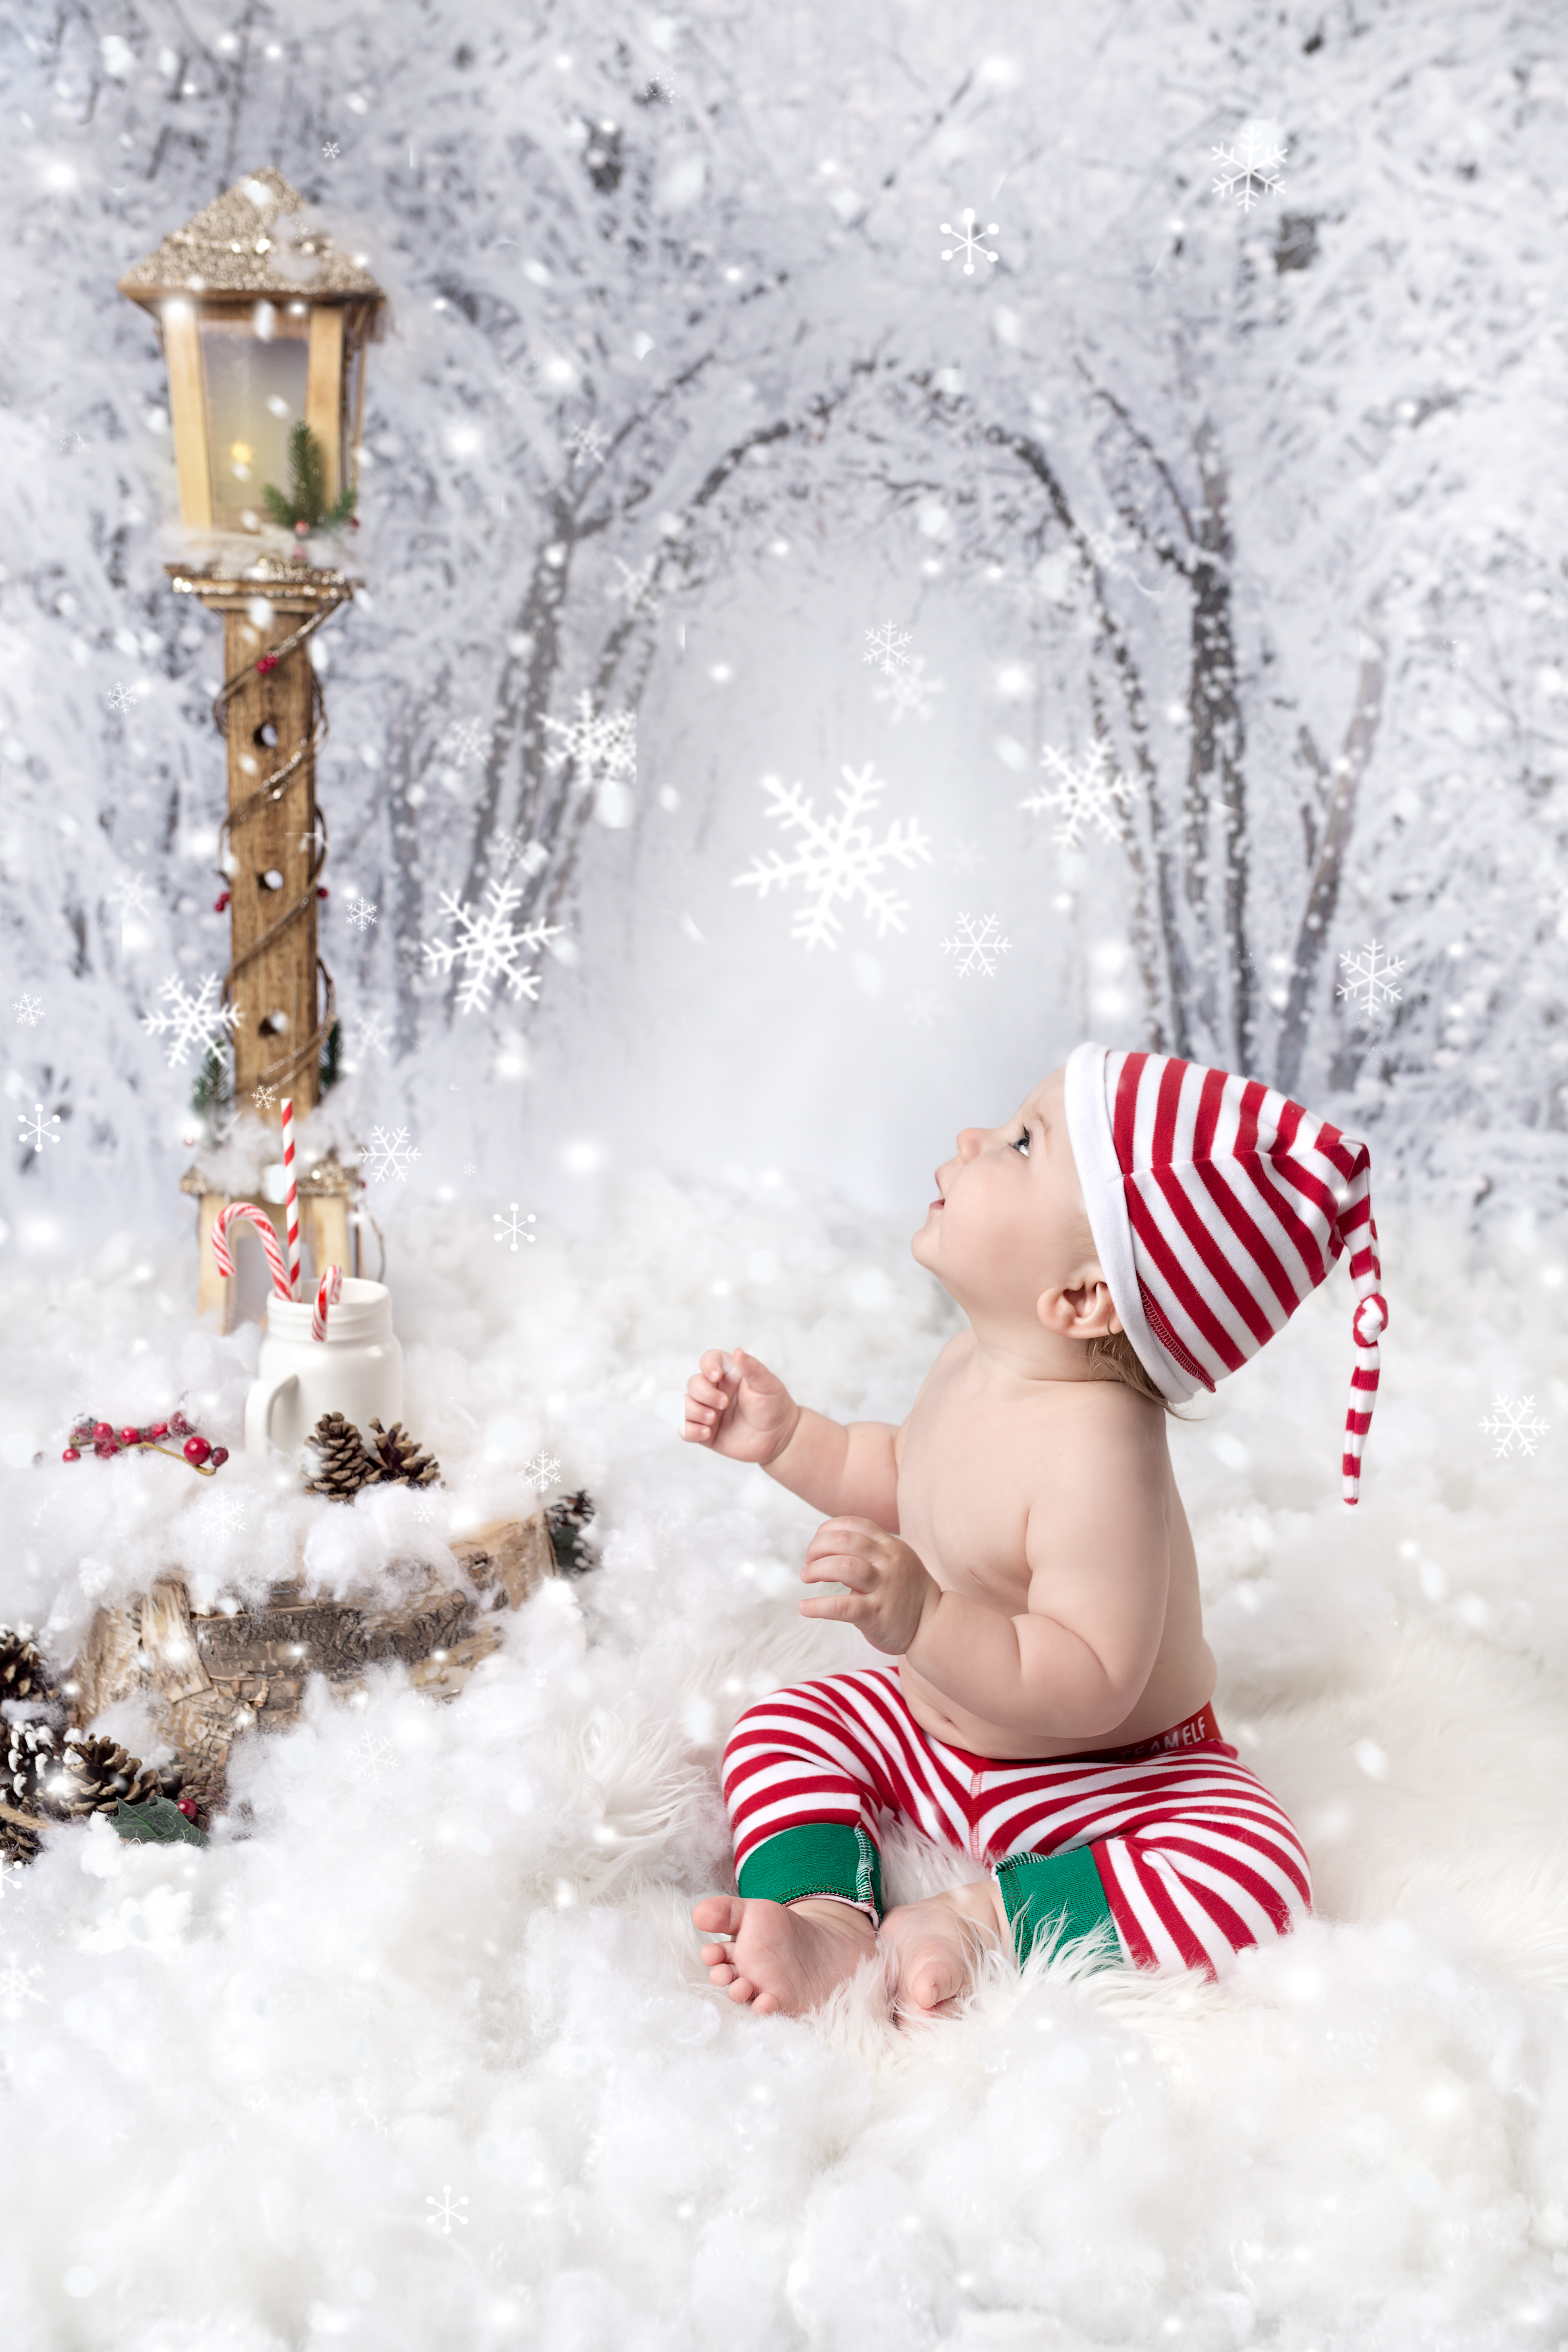 Snowy winter photography for a baby boy